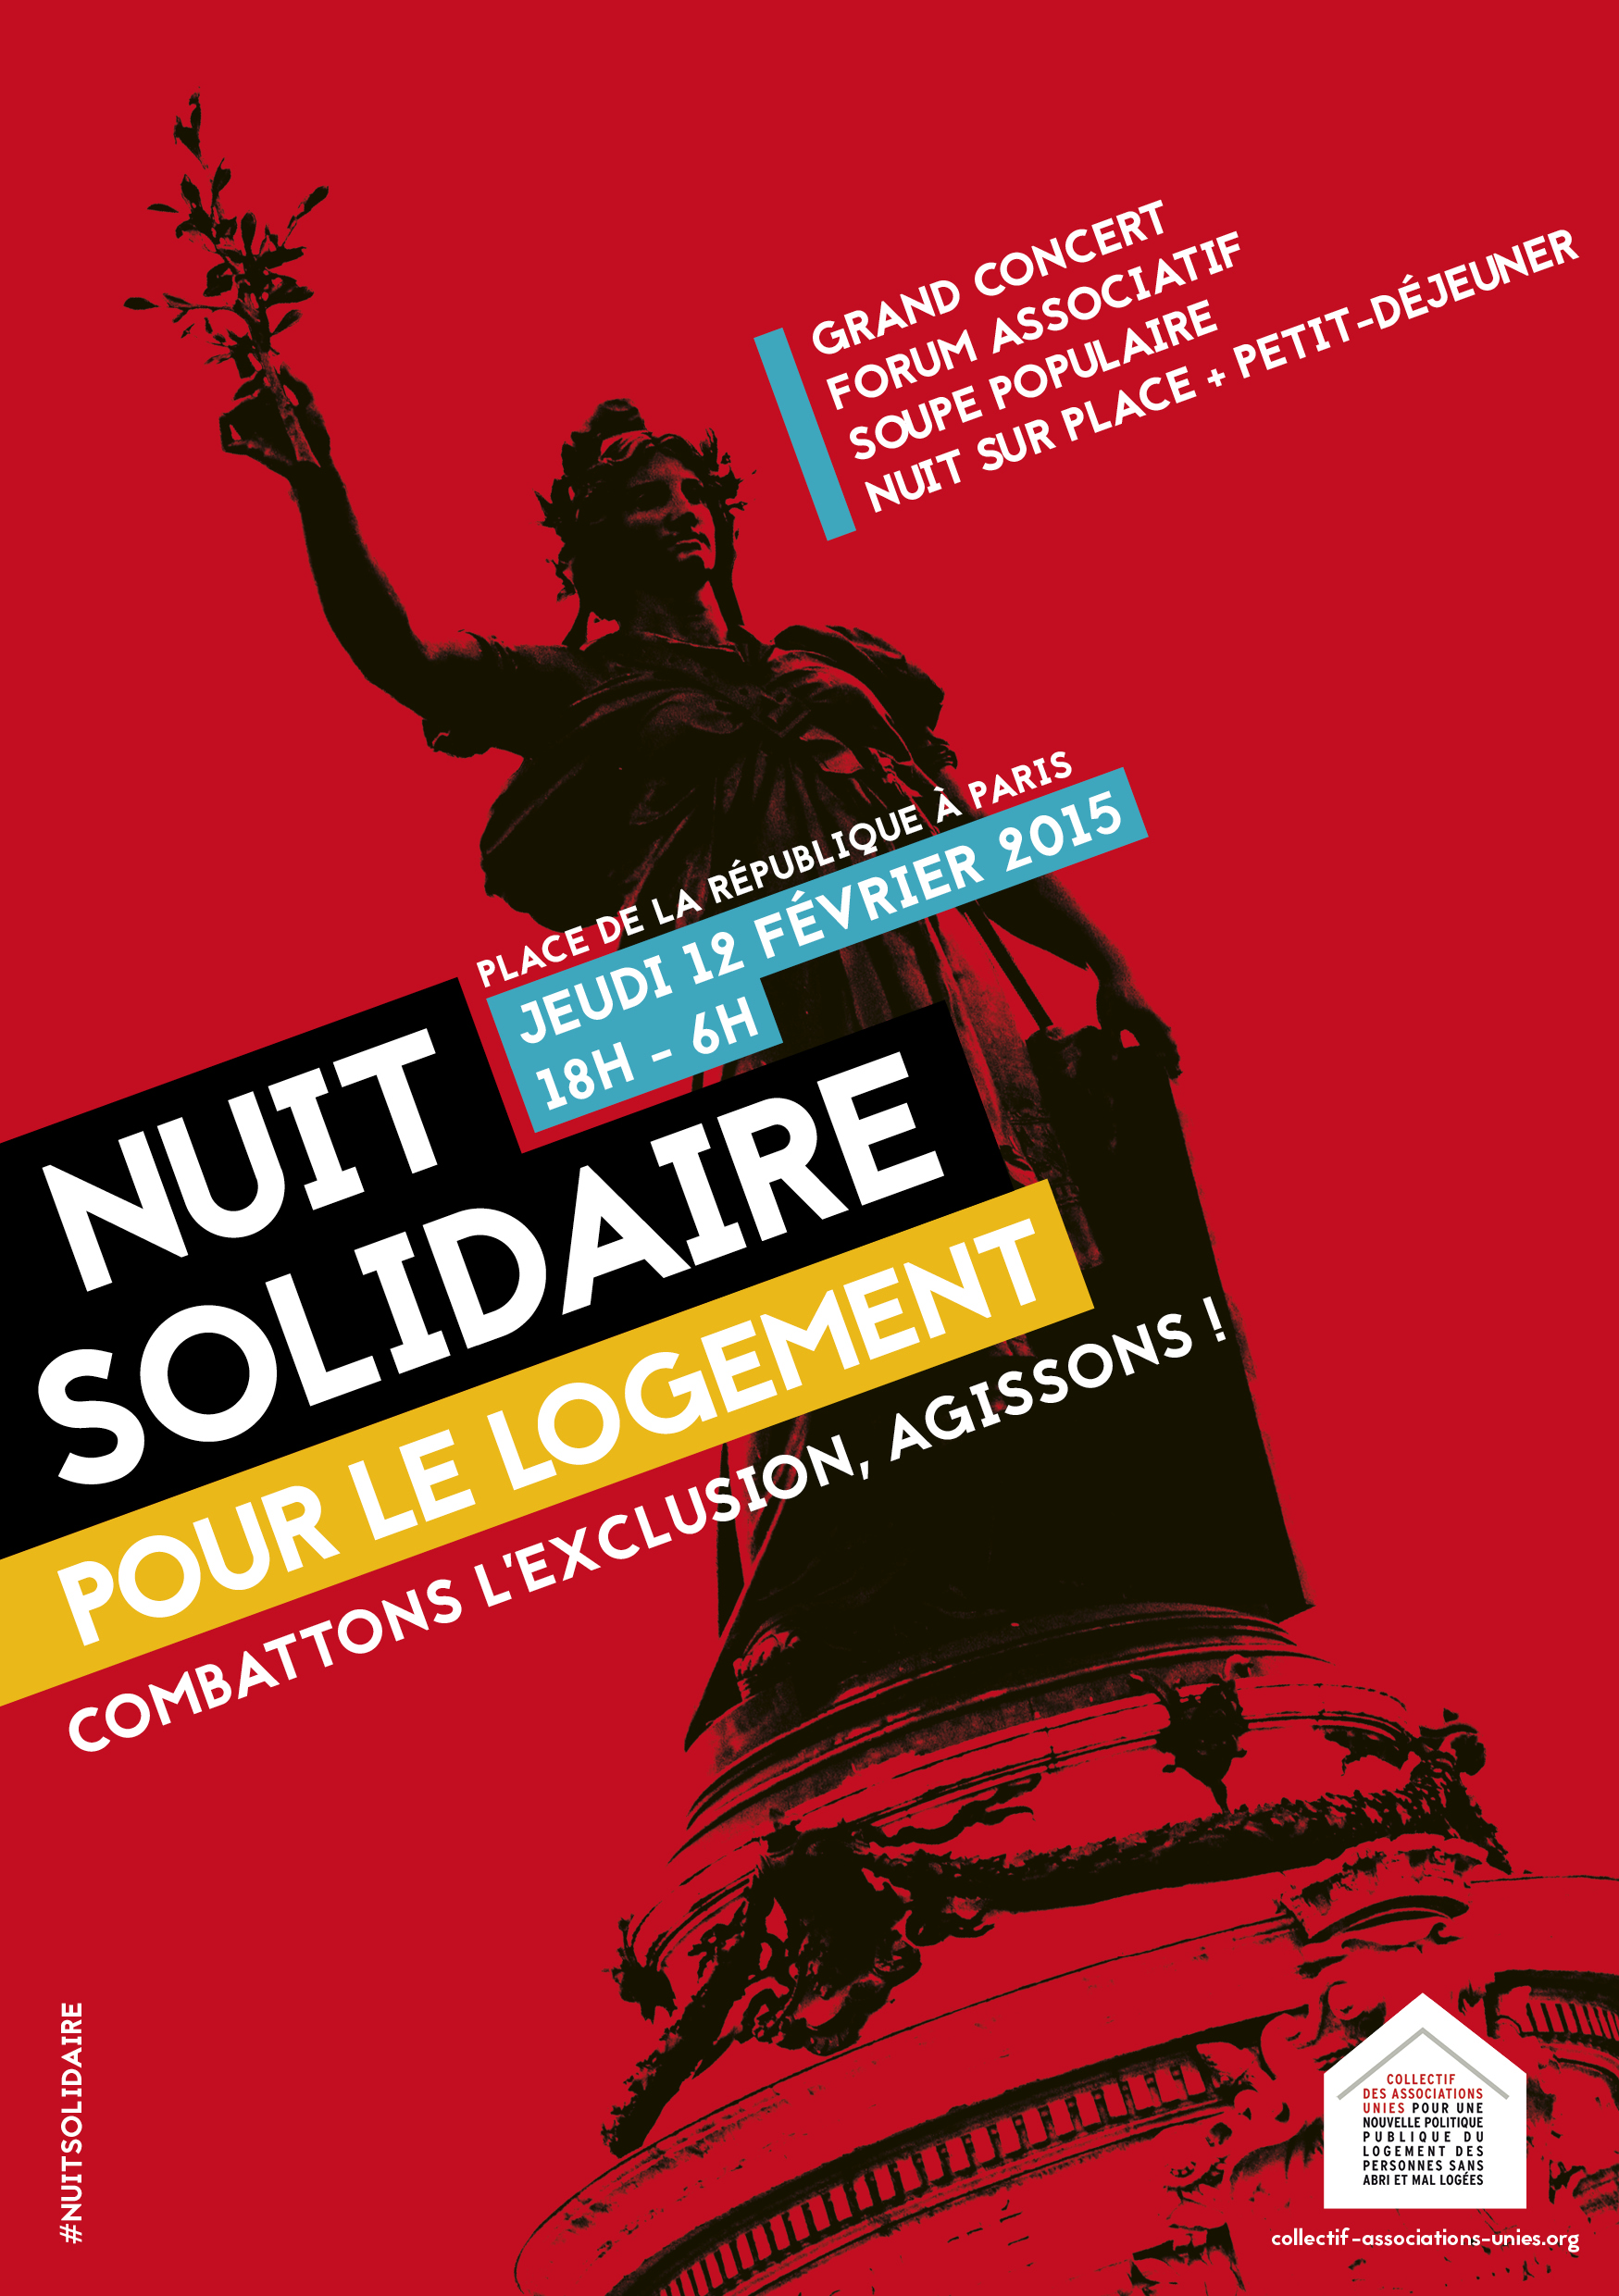 150209 nuit solidaire affiche1